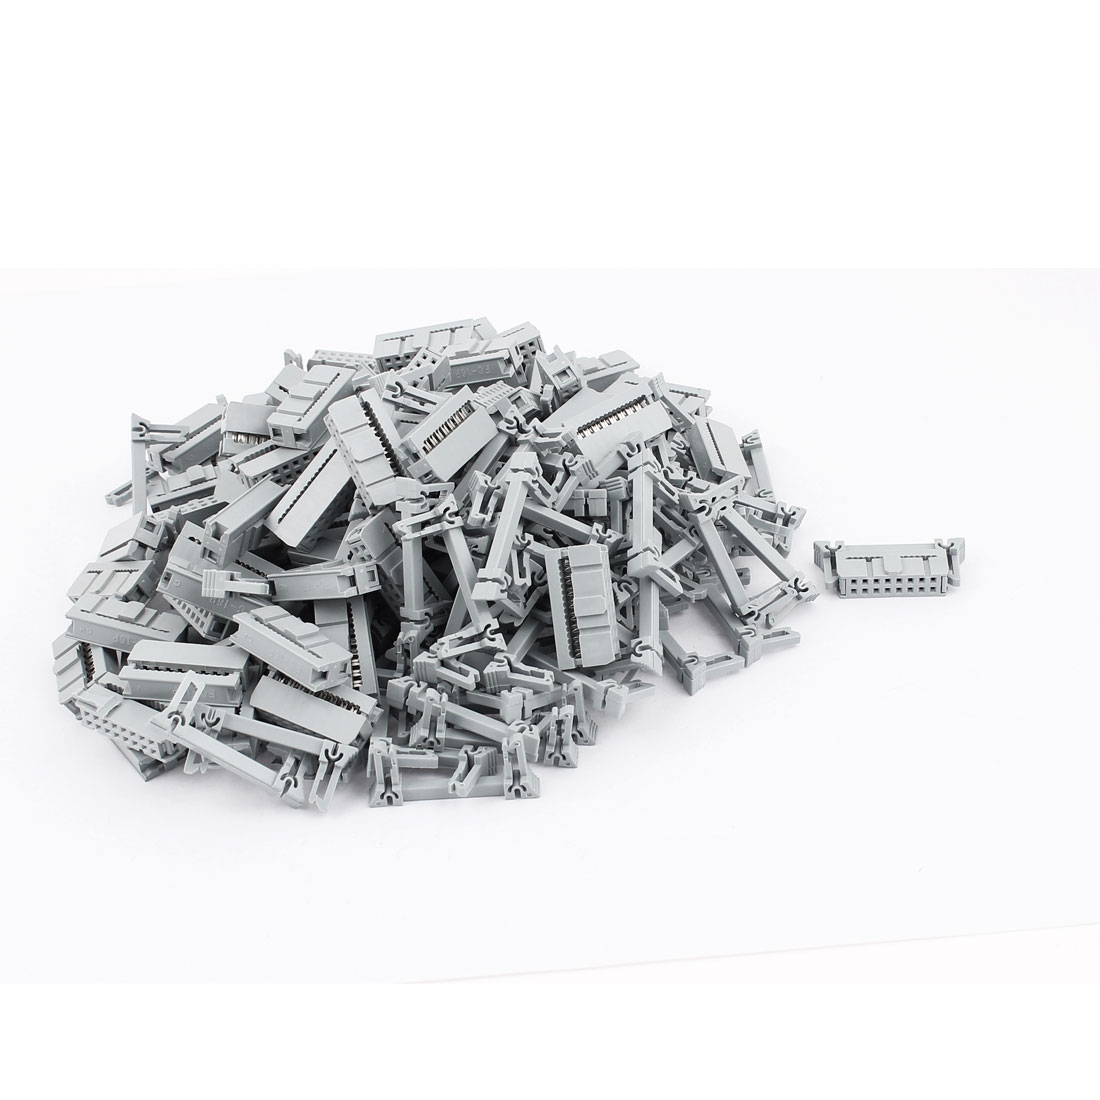 100 Pcs 2 Rows 16 Pins FC-16P IDC Socket Connector Male Header Light Gray